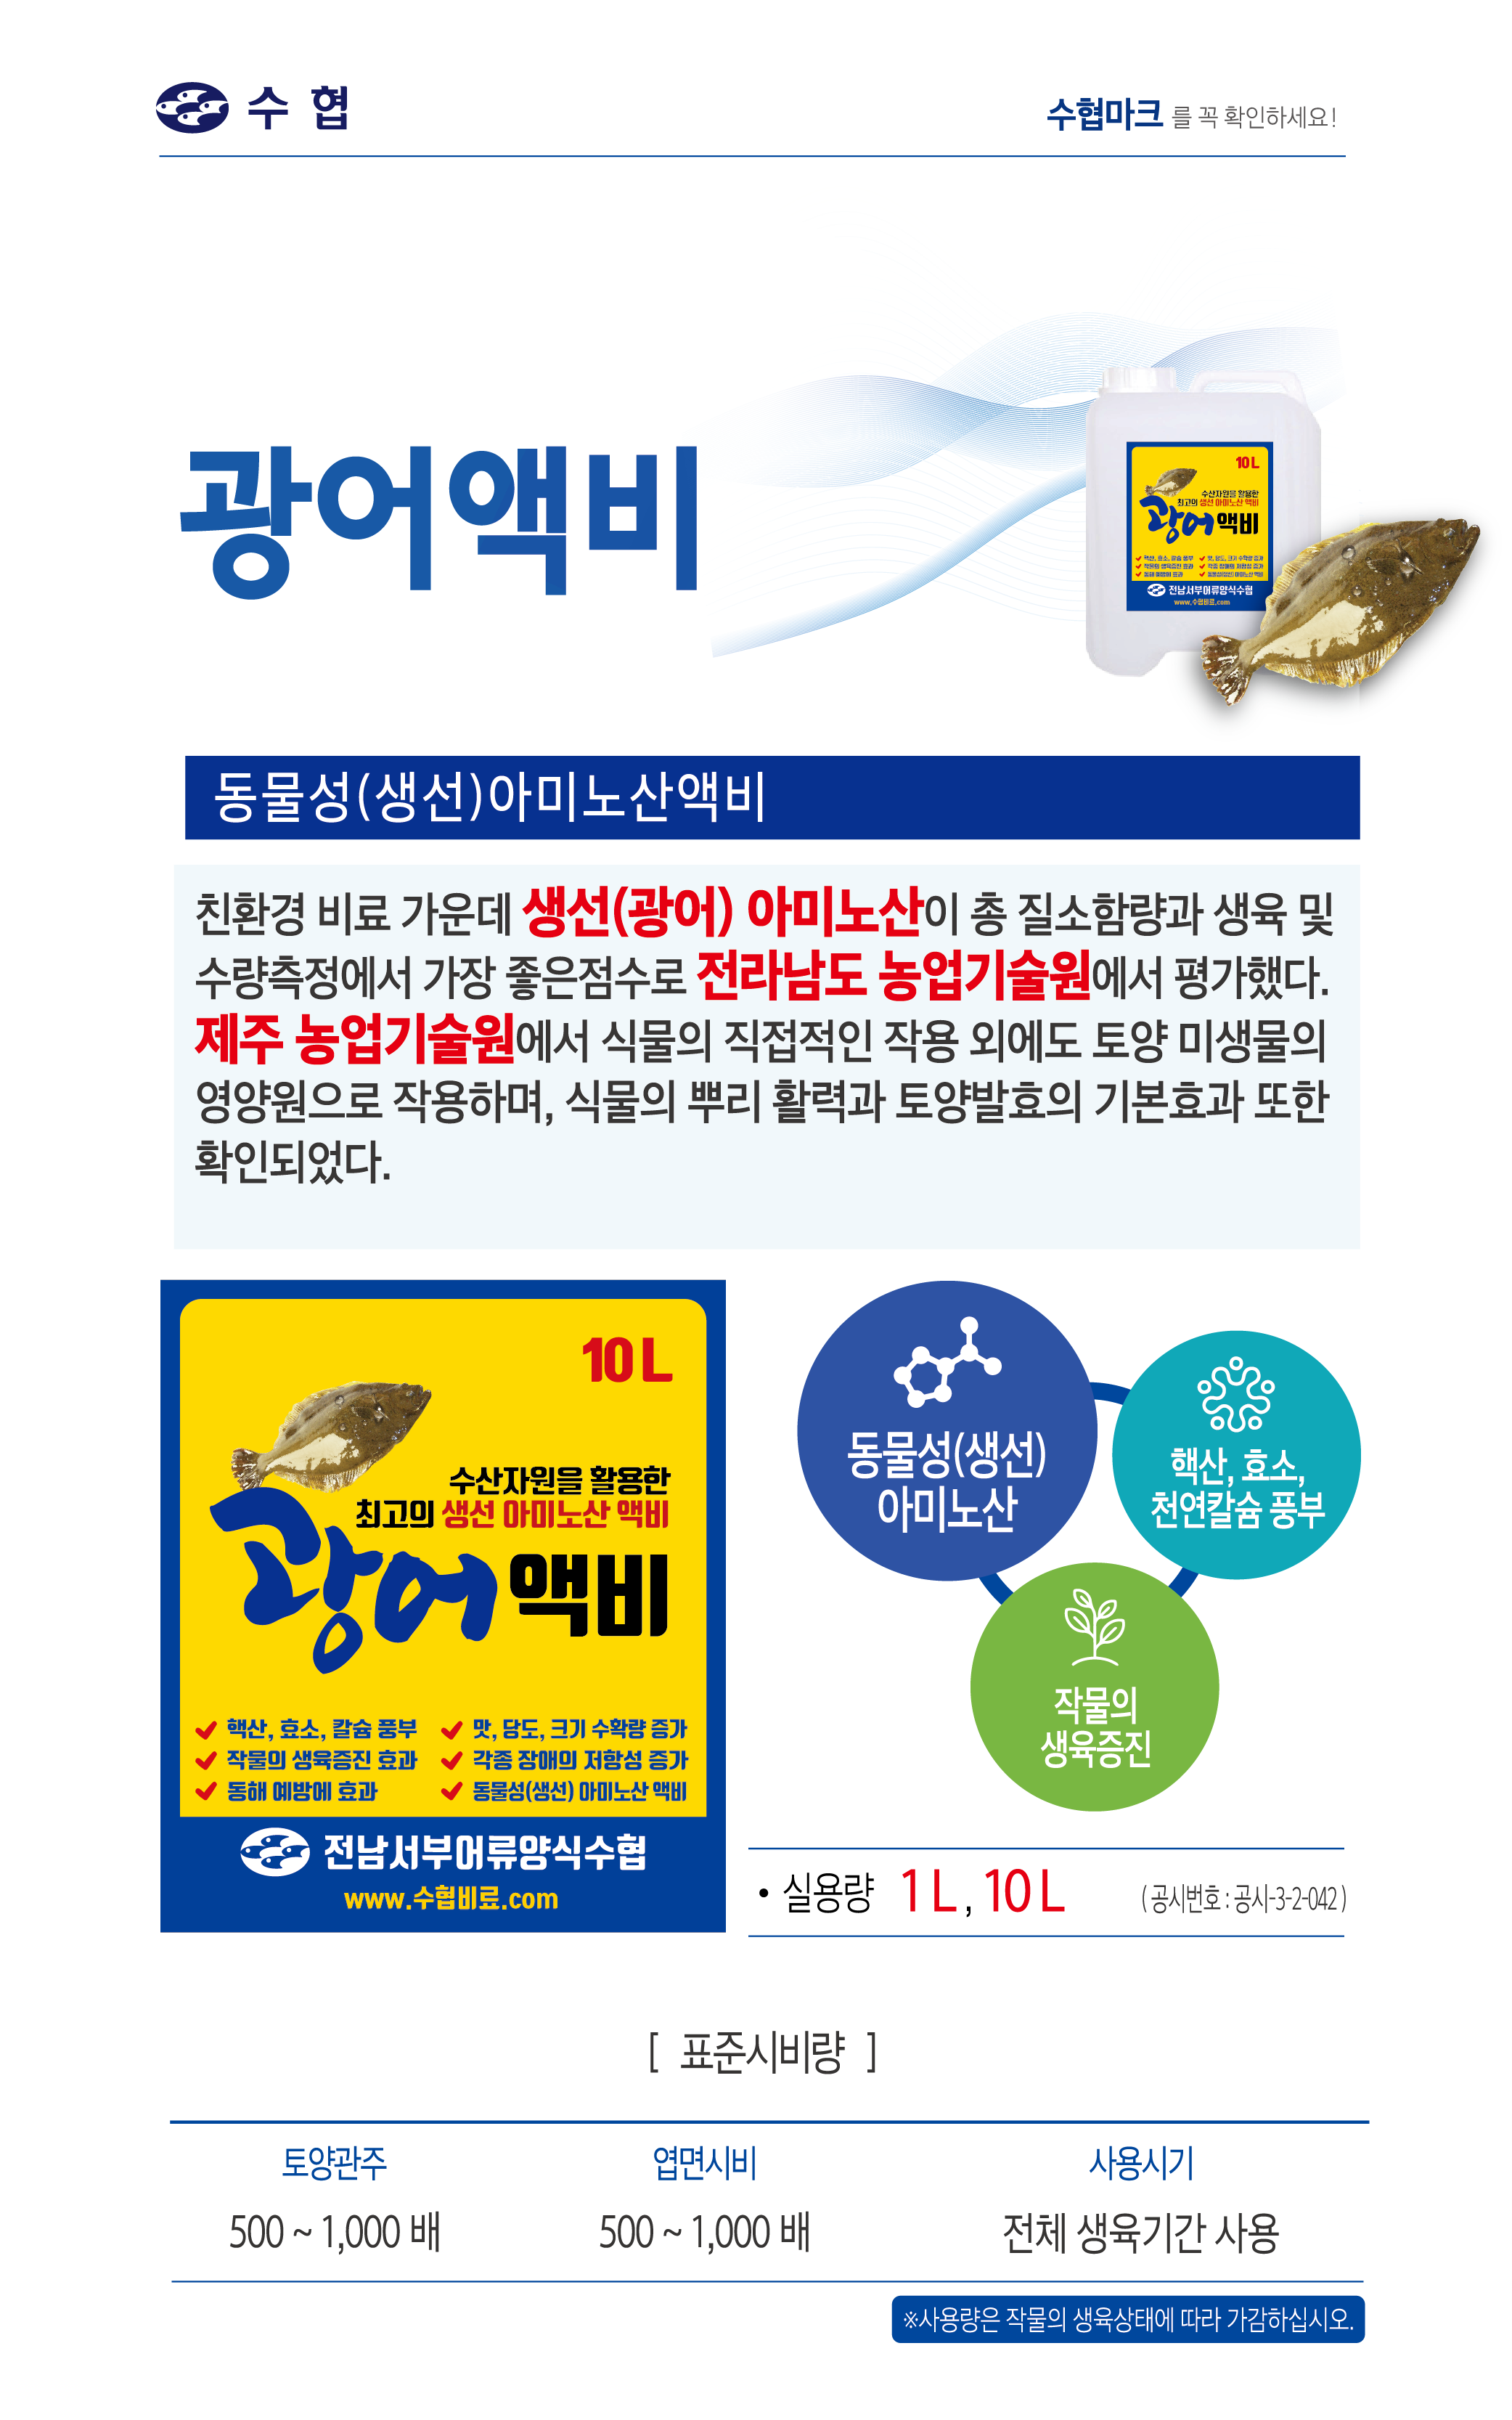 http://suhyup2019.handpr.kr/bs/se2/imgup/1574650309d01.png